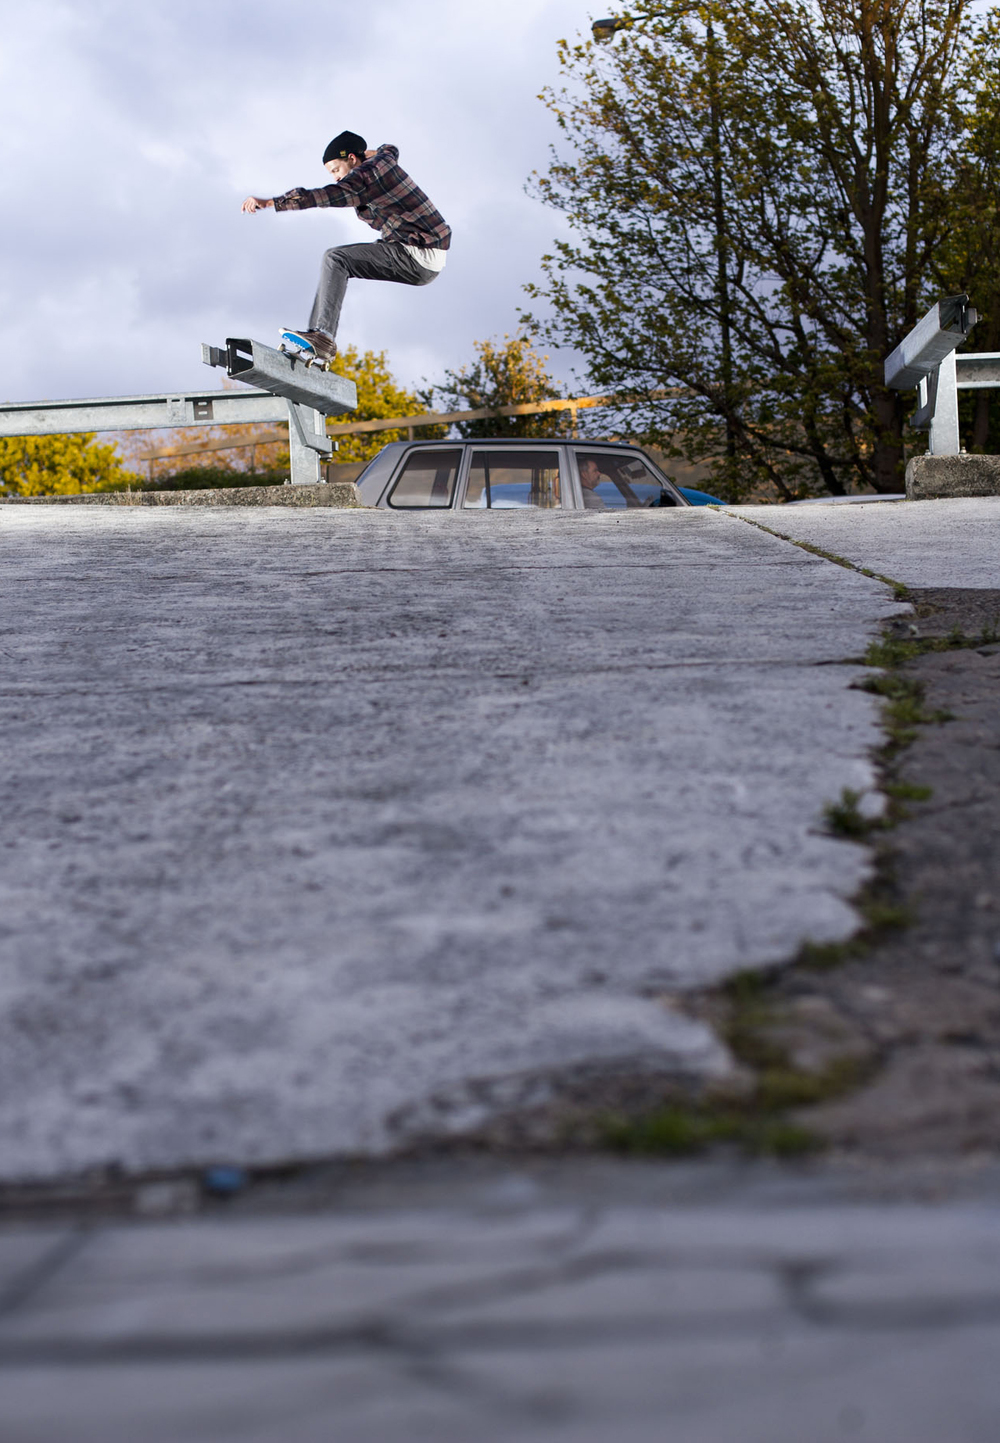 Jazz Leeb - frontside 50-50